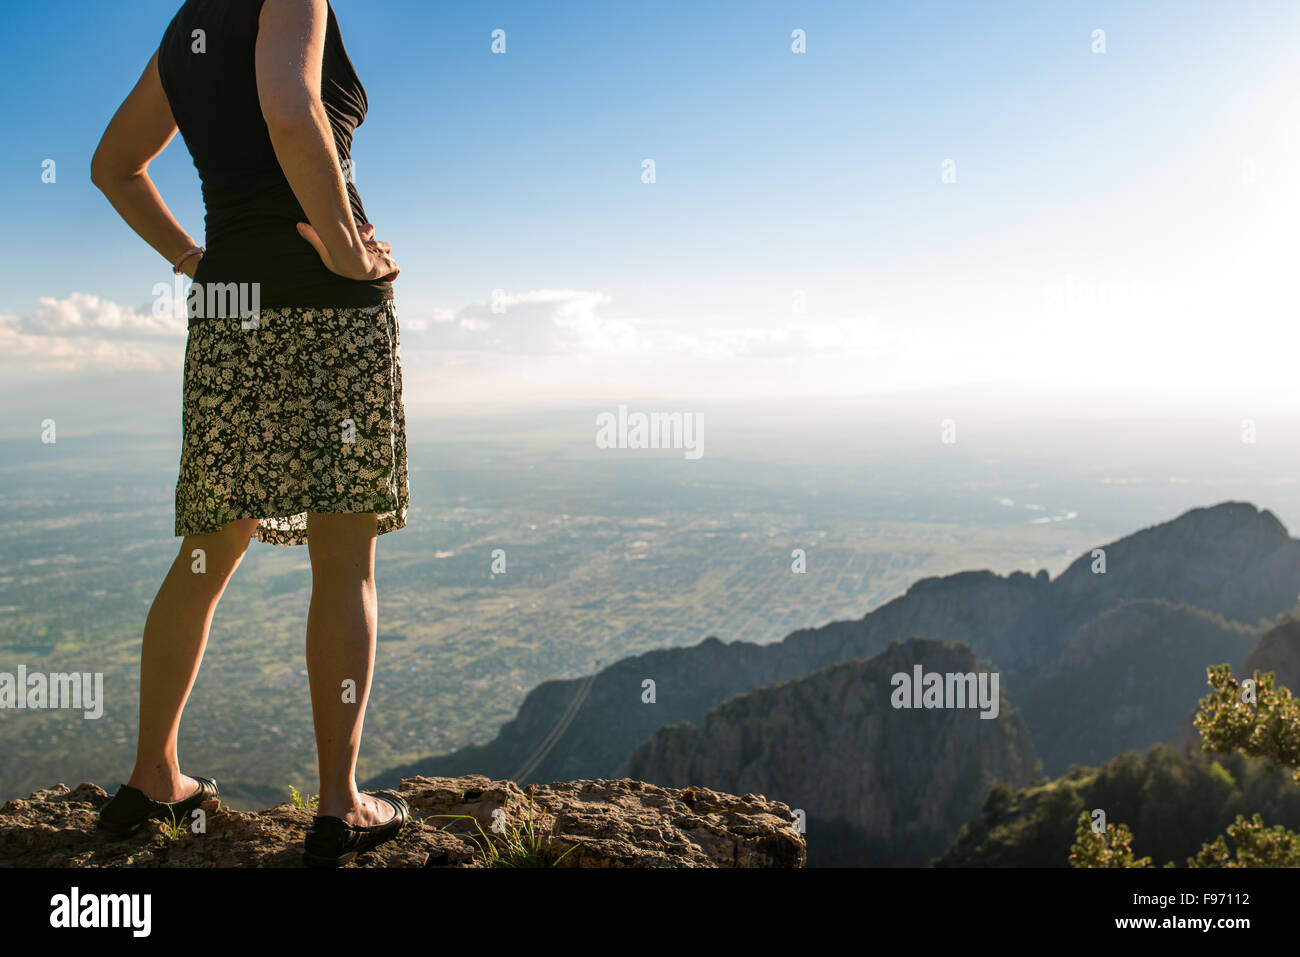 Hiking and lookout at Sandia Peak, Albuquerque, New Mexico. - Stock Image